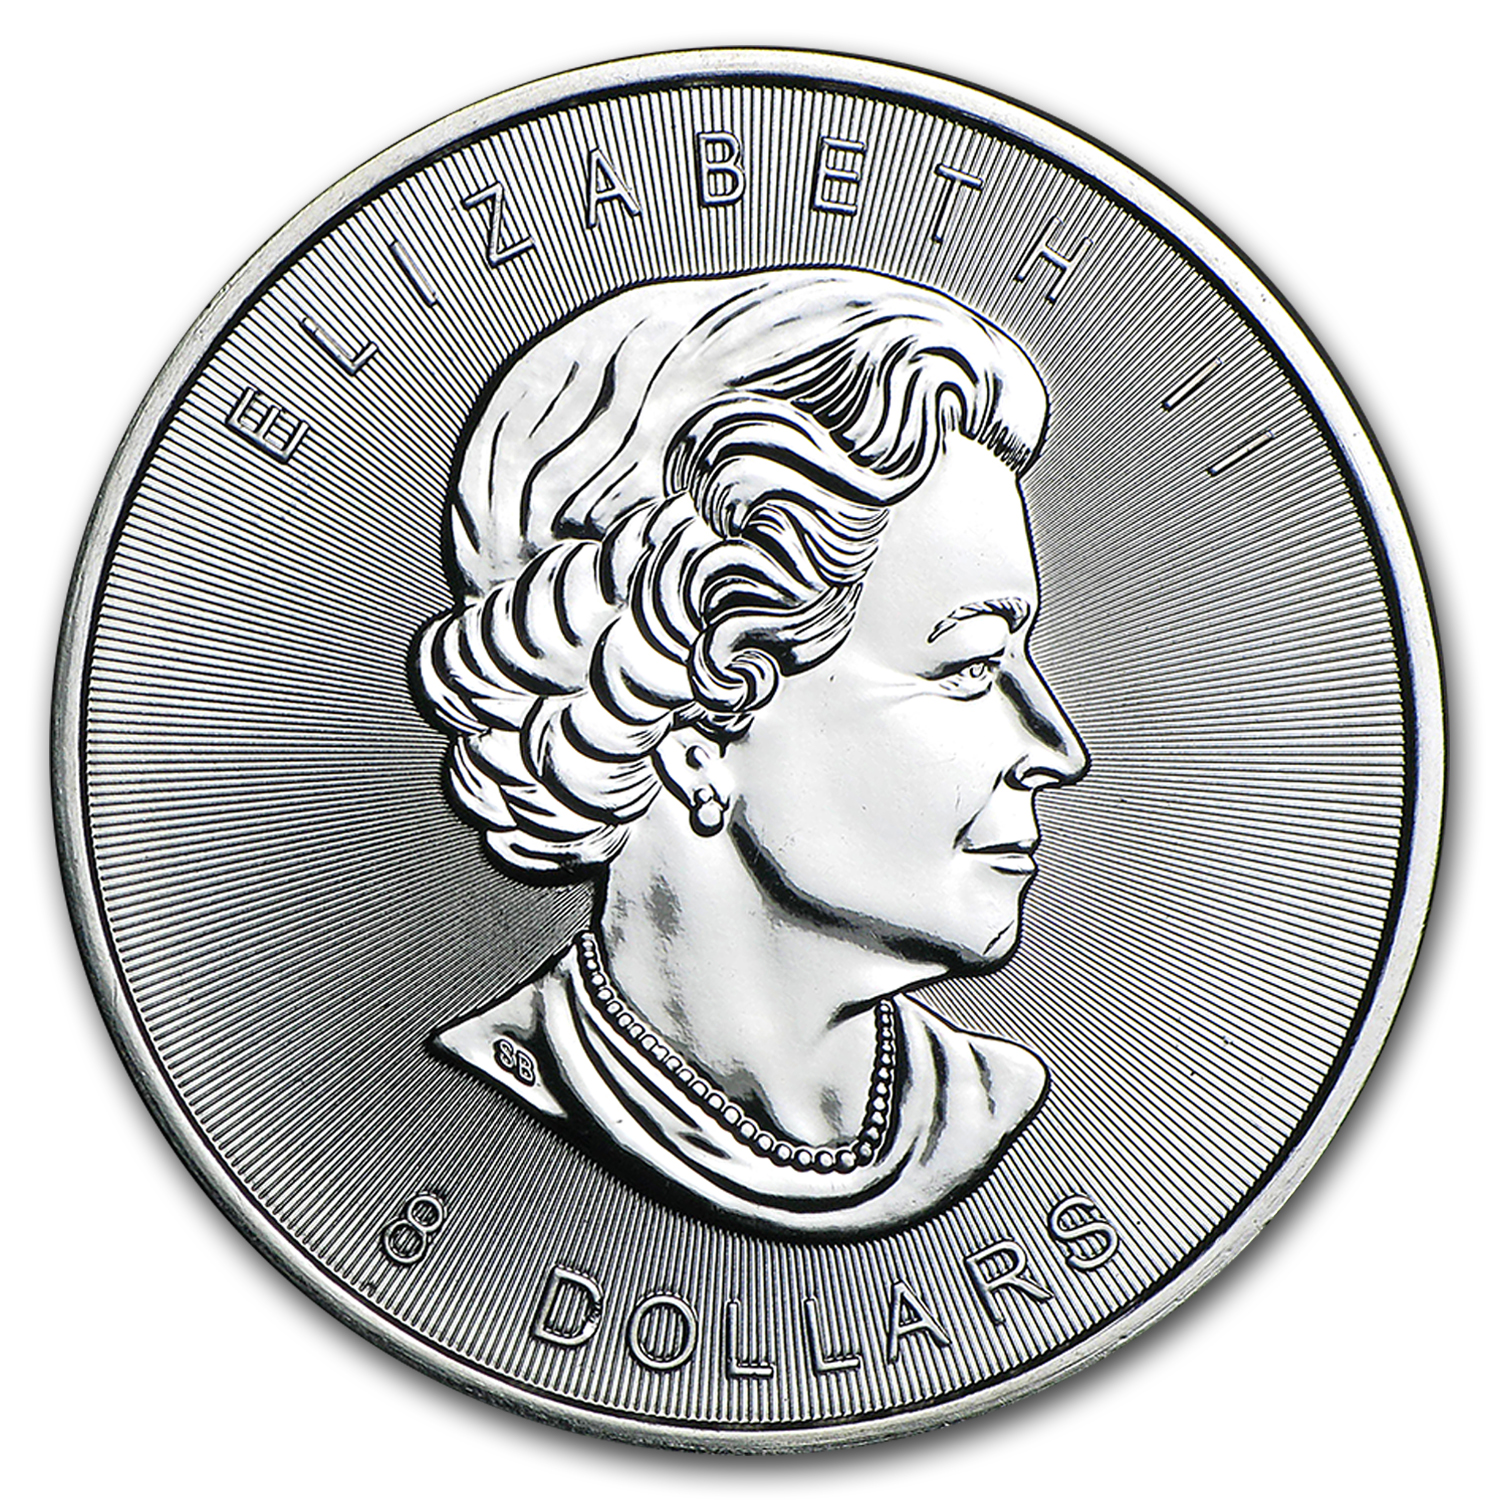 2015 Canada 1.5 oz Silver $8 SuperLeaf BU